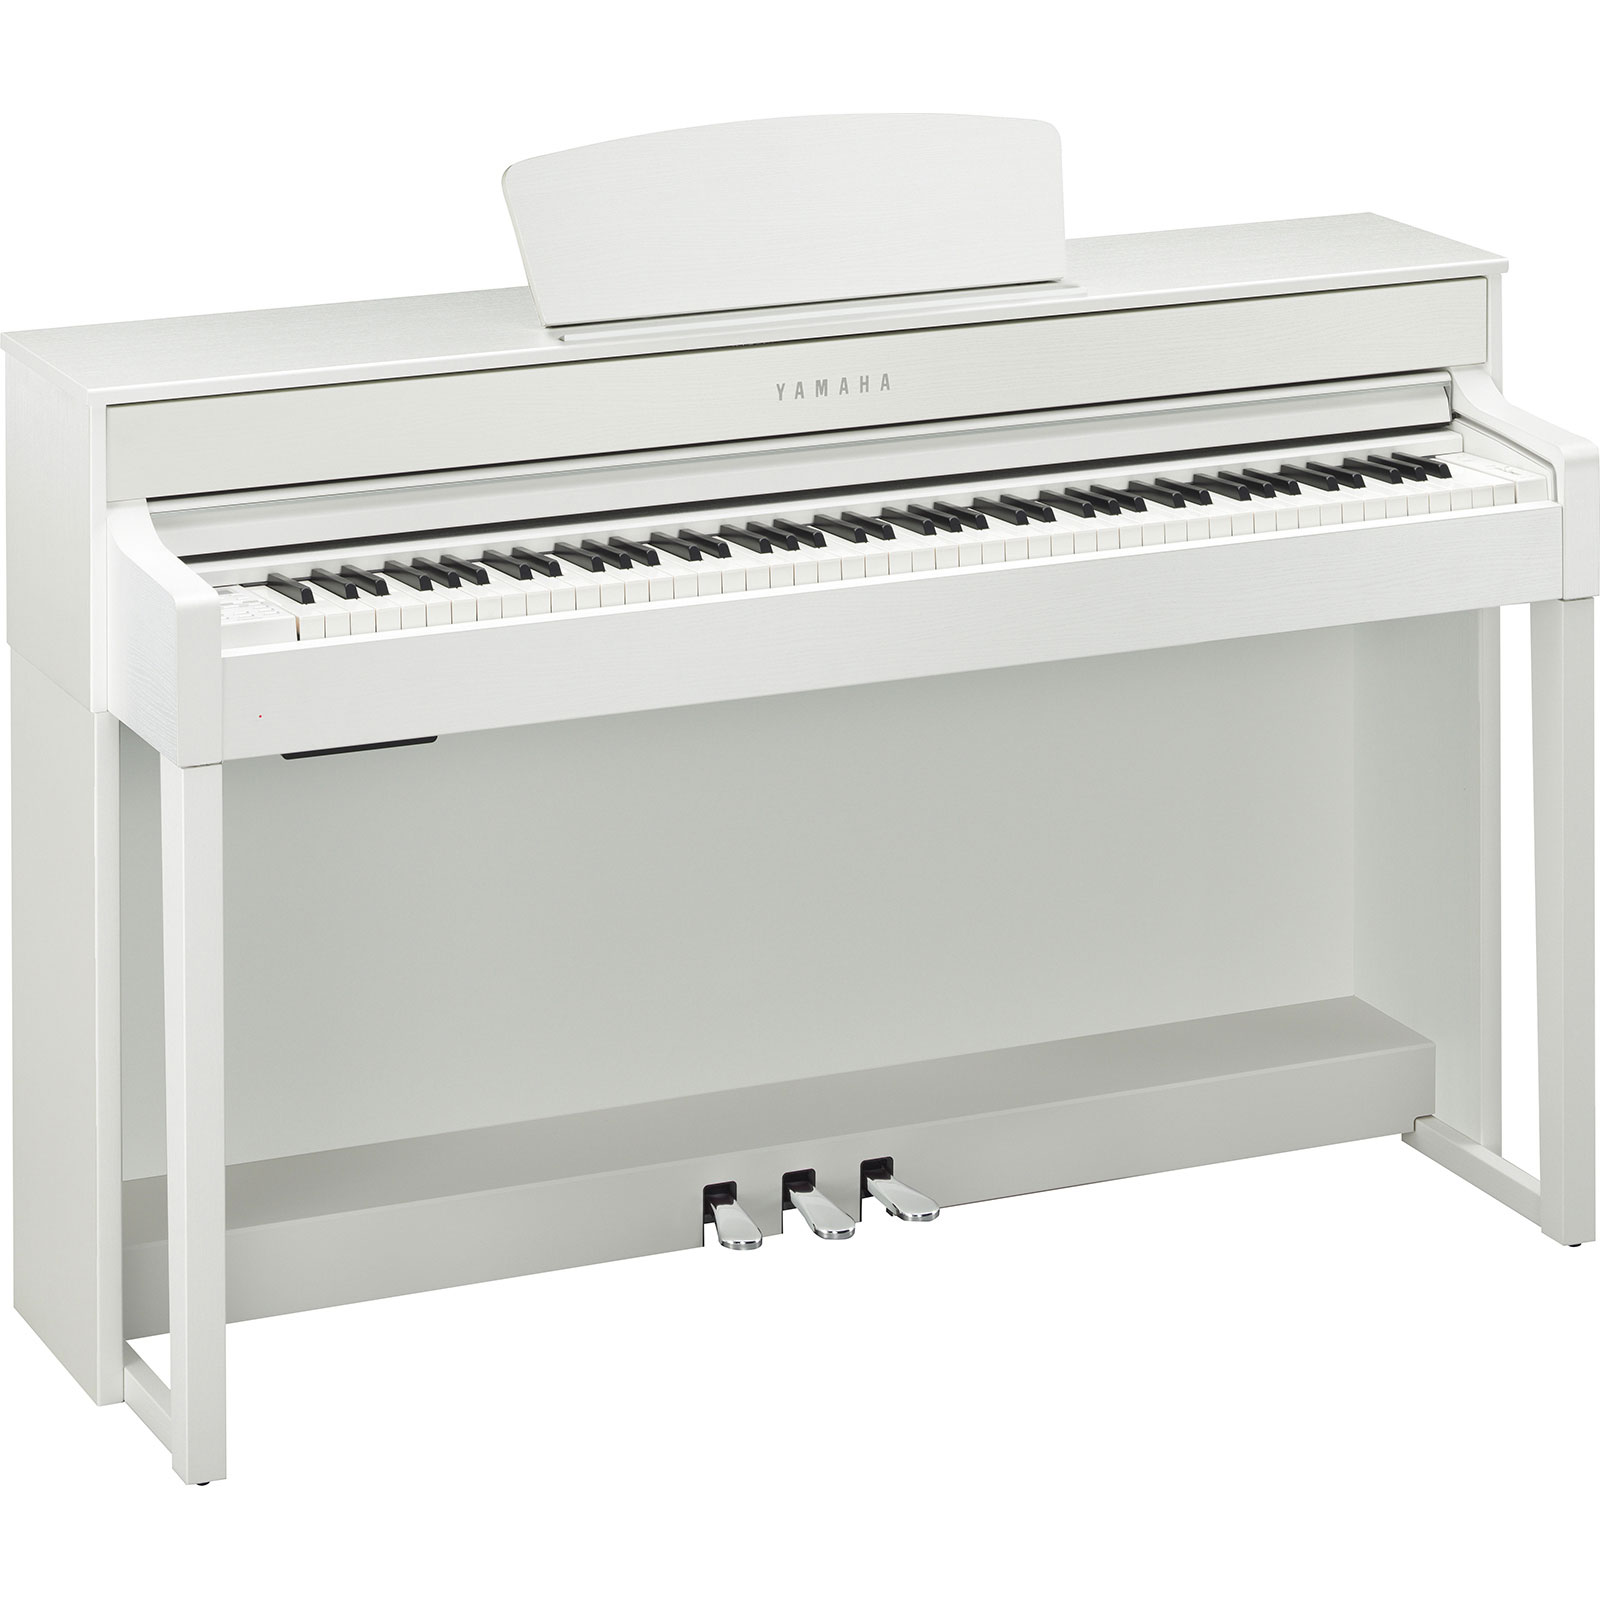 Clp 535 Absolute Pianoabsolute Piano